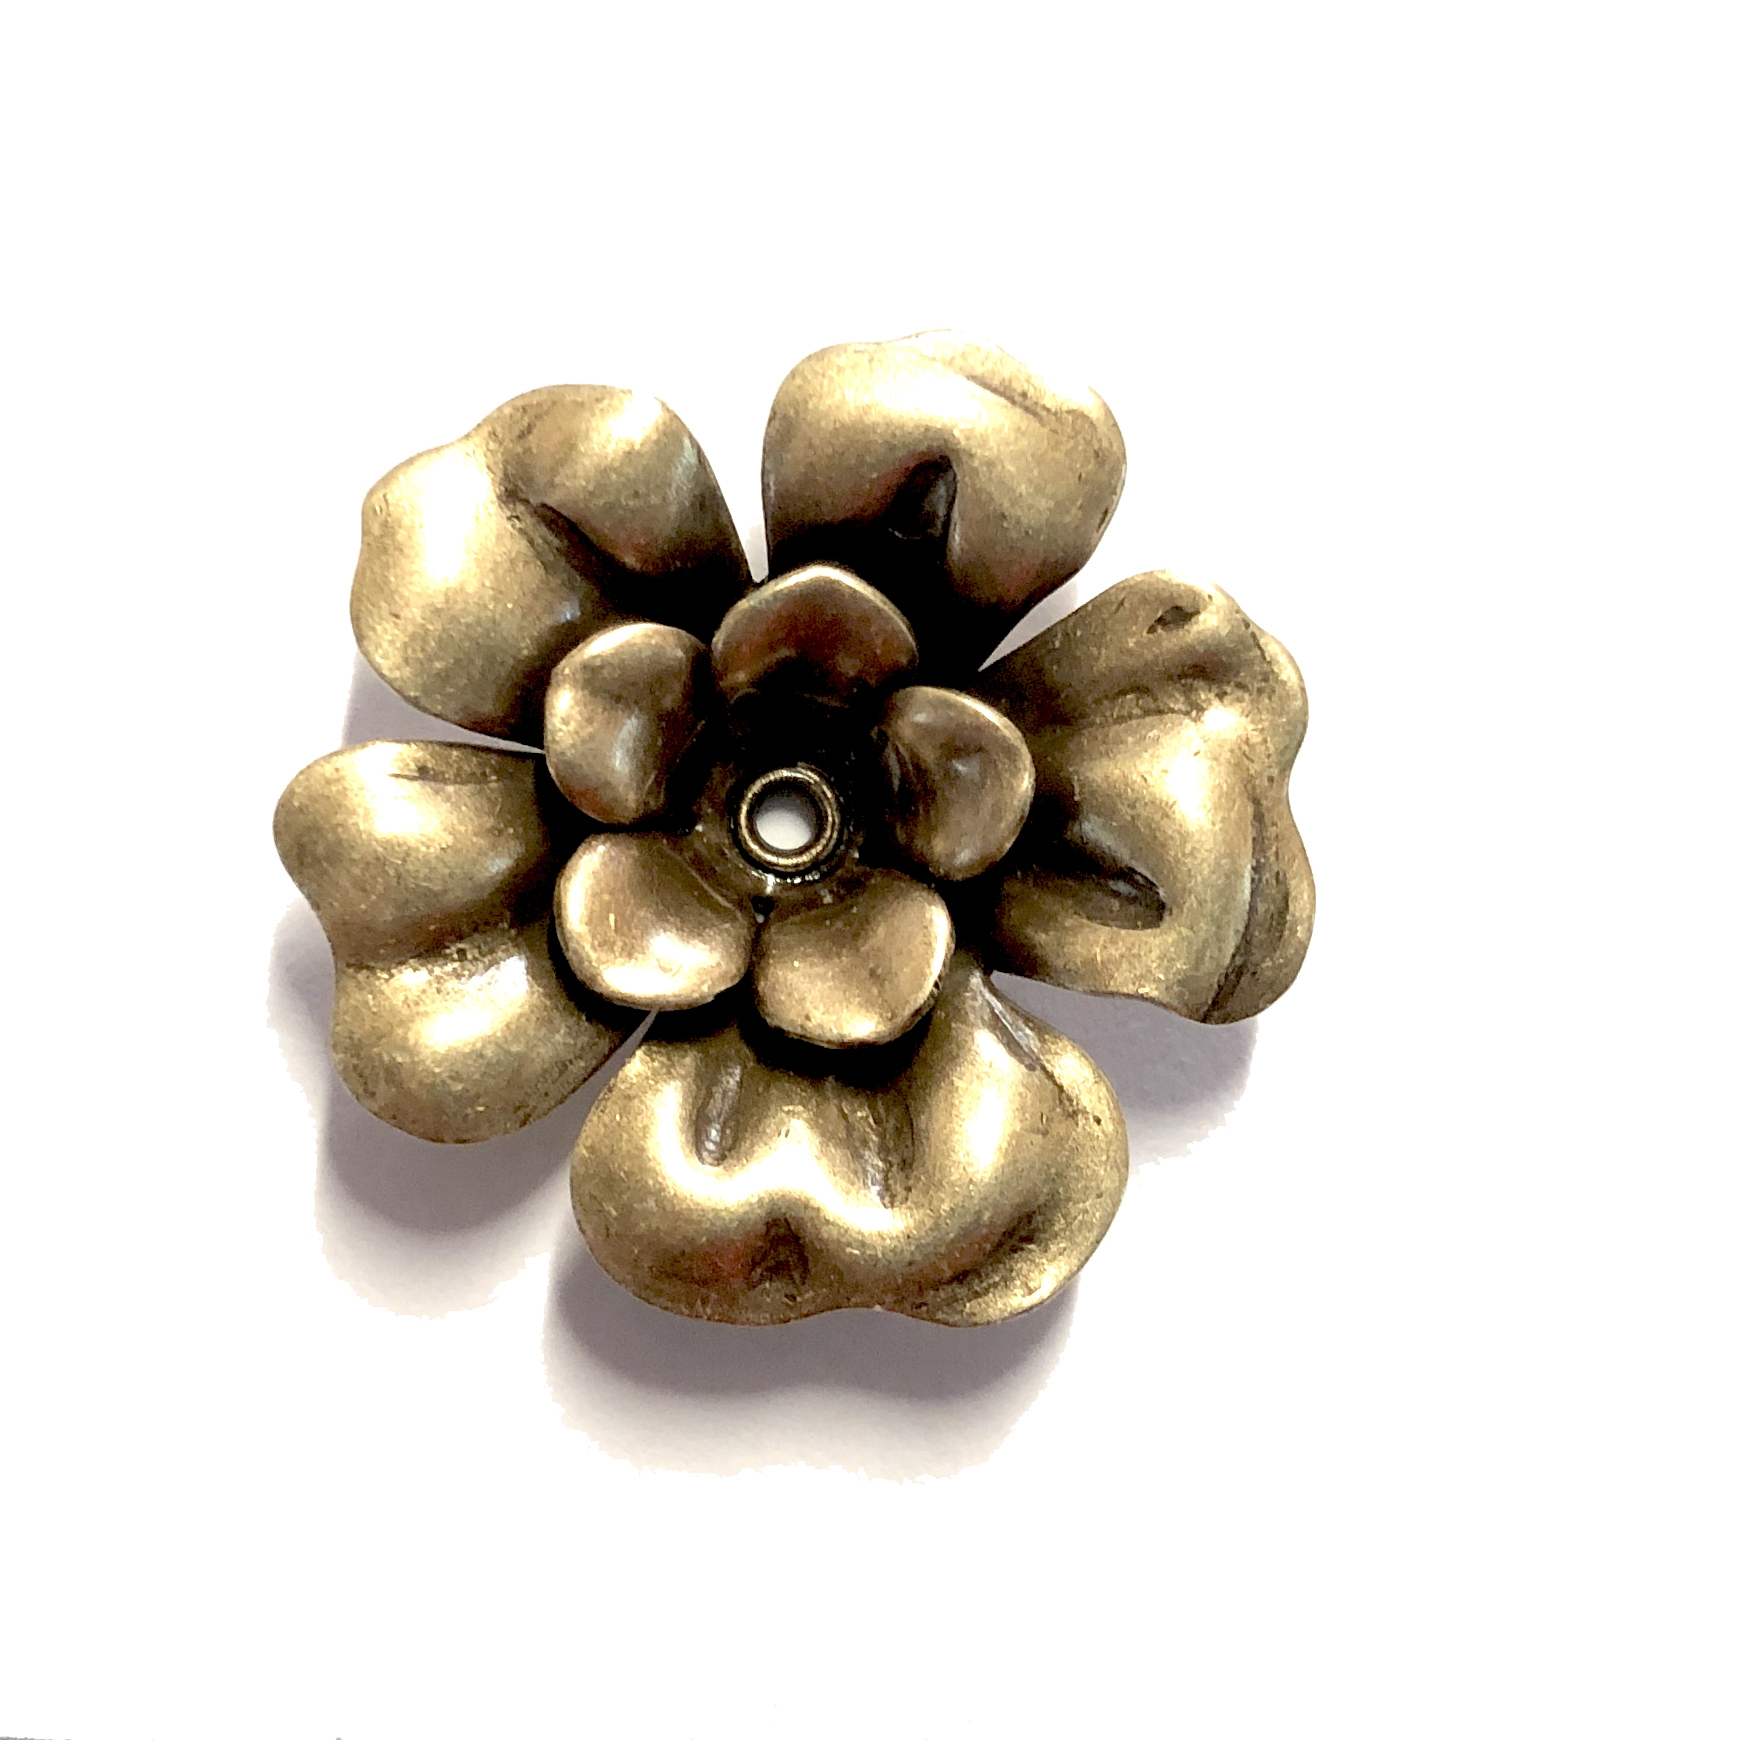 brass rose, brass ox, two layers, antique brass, vintage, brass, brass stamping, flower, rivet, tea rose, 28mm, flower jewelry, rose jewelry, us made, vintage style, nickel free, jewelry making, vintage supplies, jewelry supplies, jewelry findings, 05192